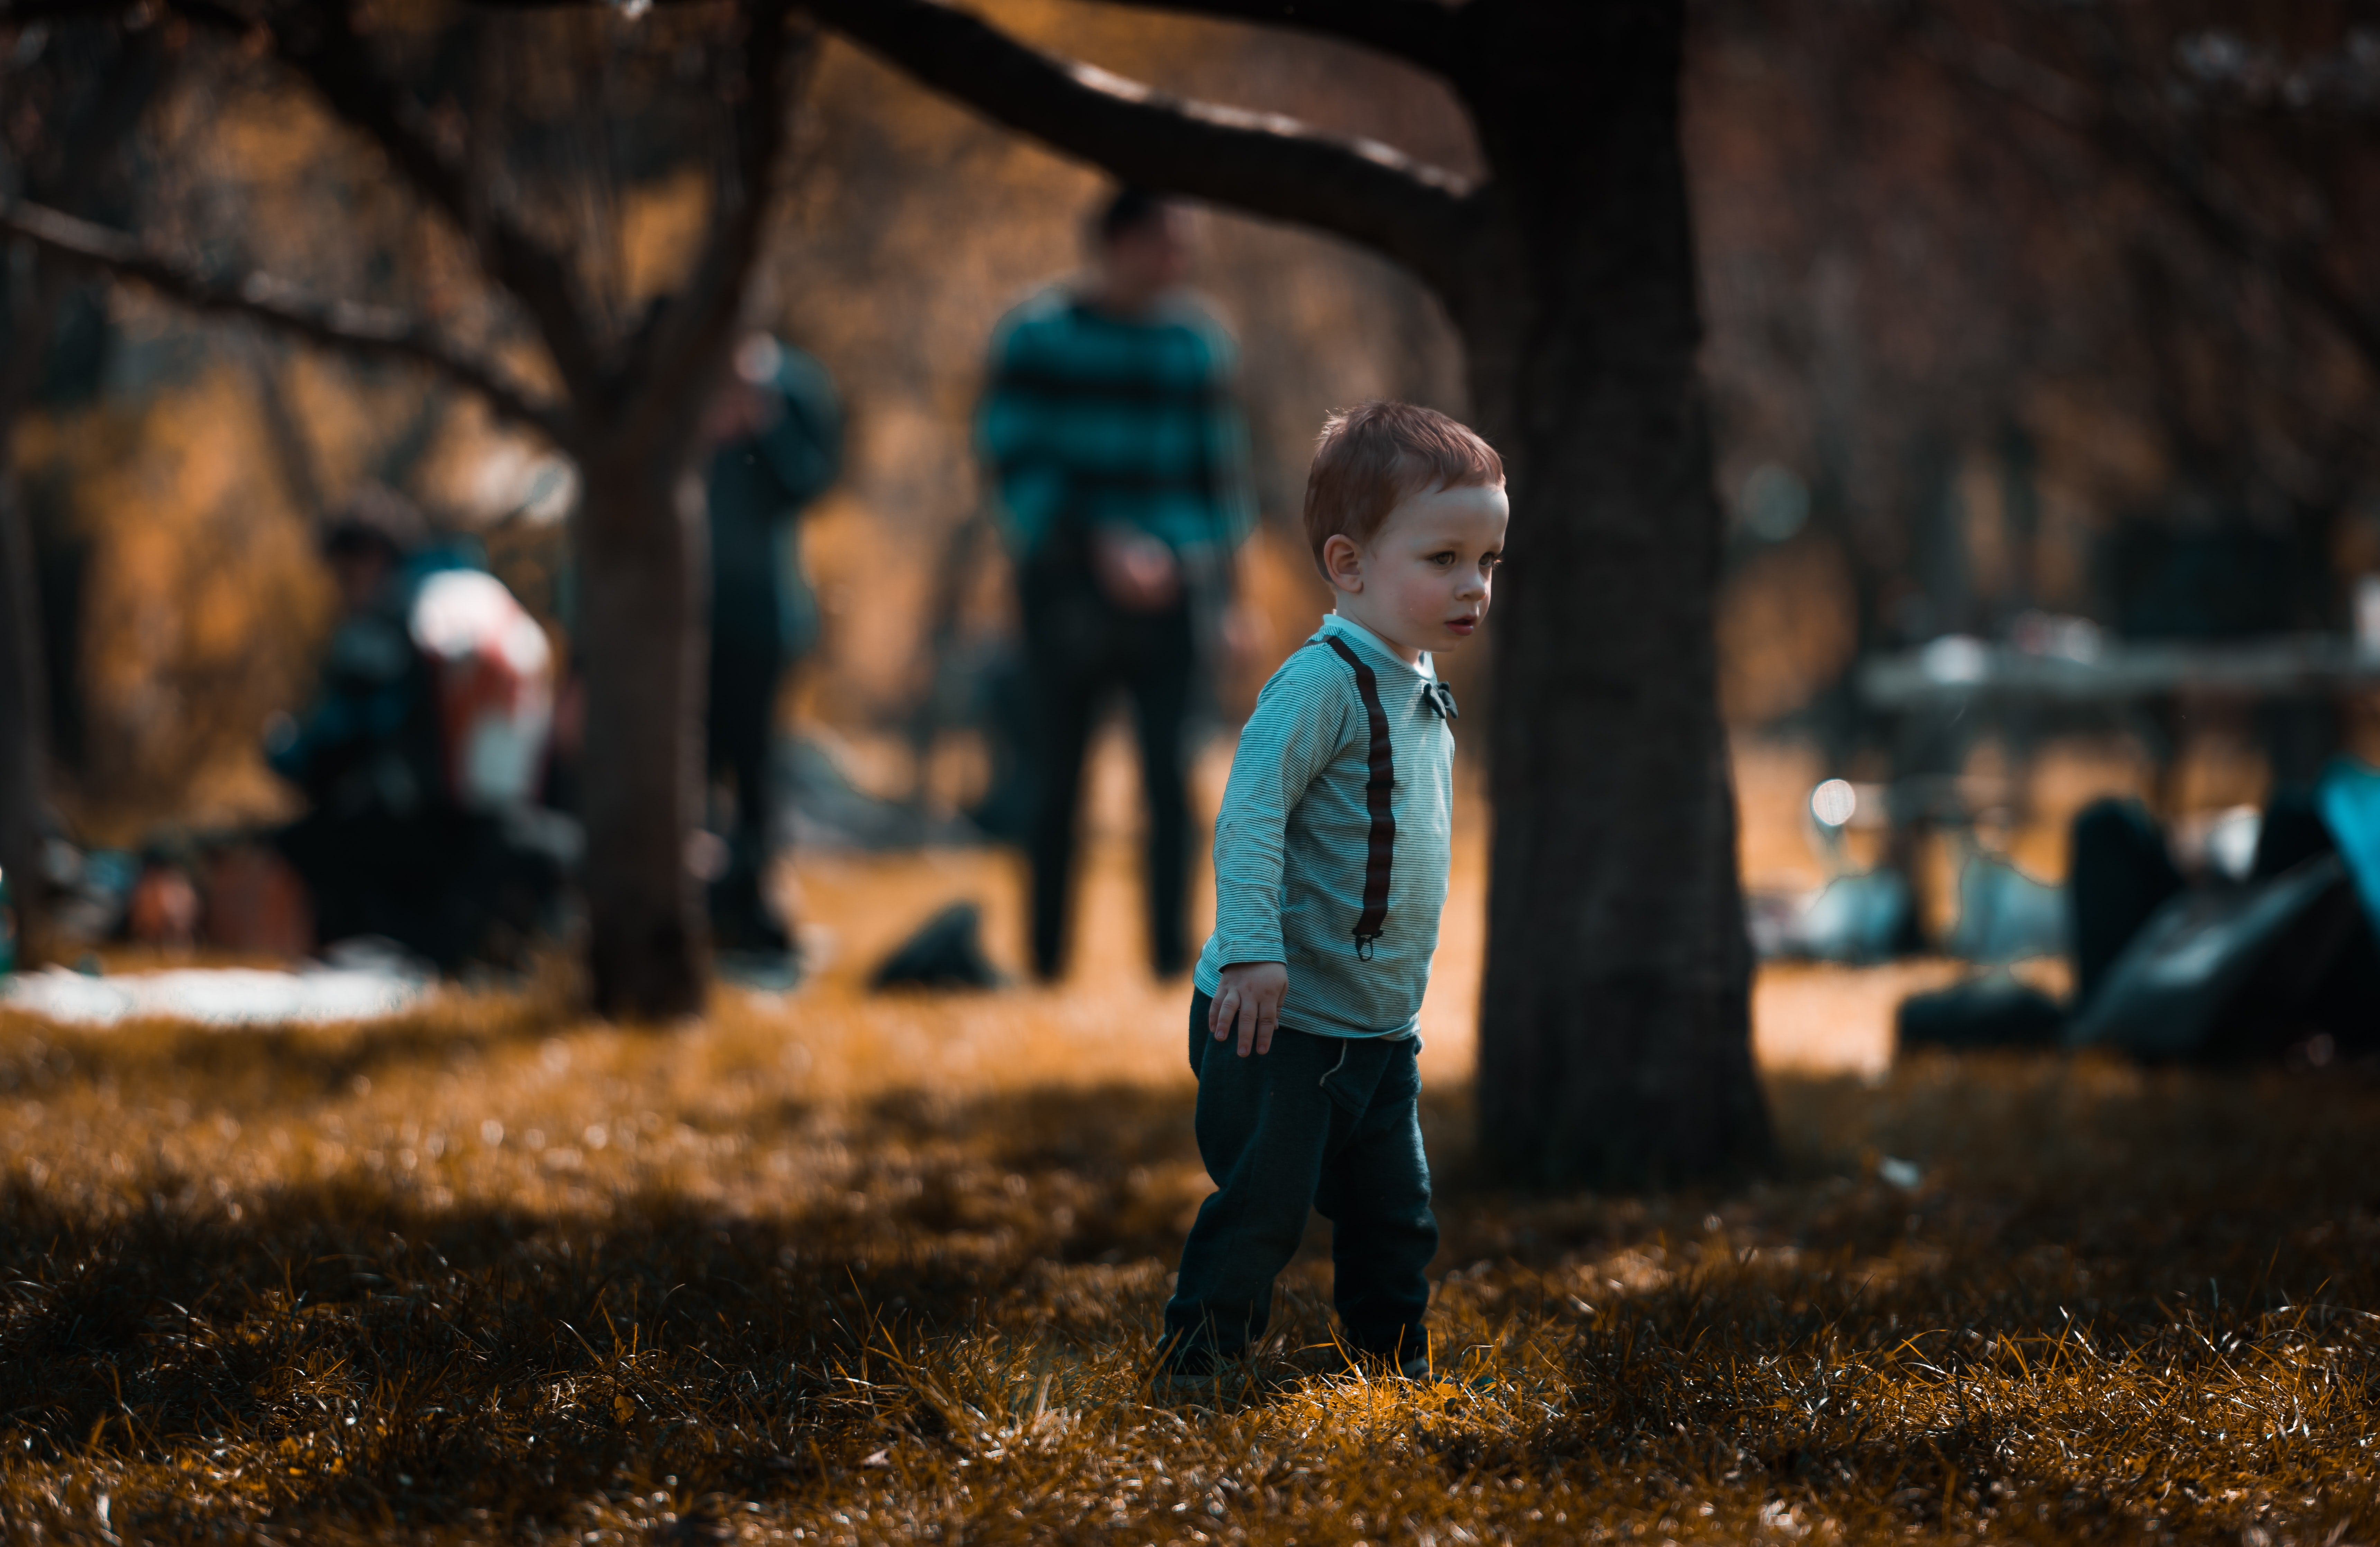 baby boy standing on grass near trees